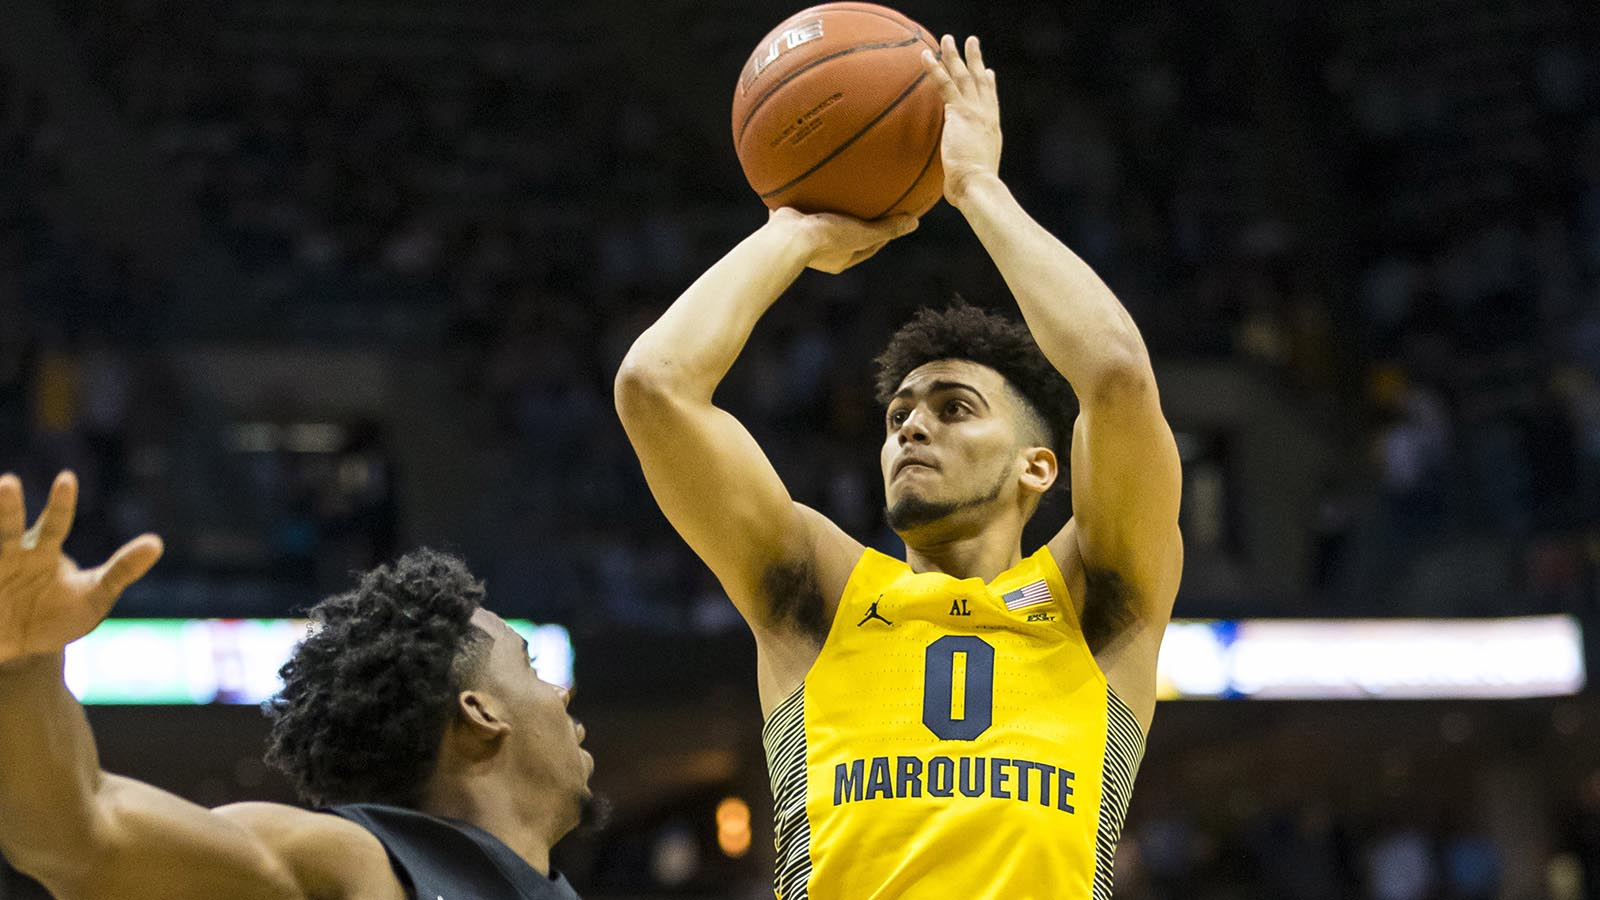 Feb 18, 2017; Milwaukee, WI, USA; Marquette Golden Eagles guard Markus Howard (0) shoots over Xavier Musketeers guard Quentin Goodin (3) during the first half at BMO Harris Bradley Center. Mandatory Credit: Jeff Hanisch-USA TODAY Sports